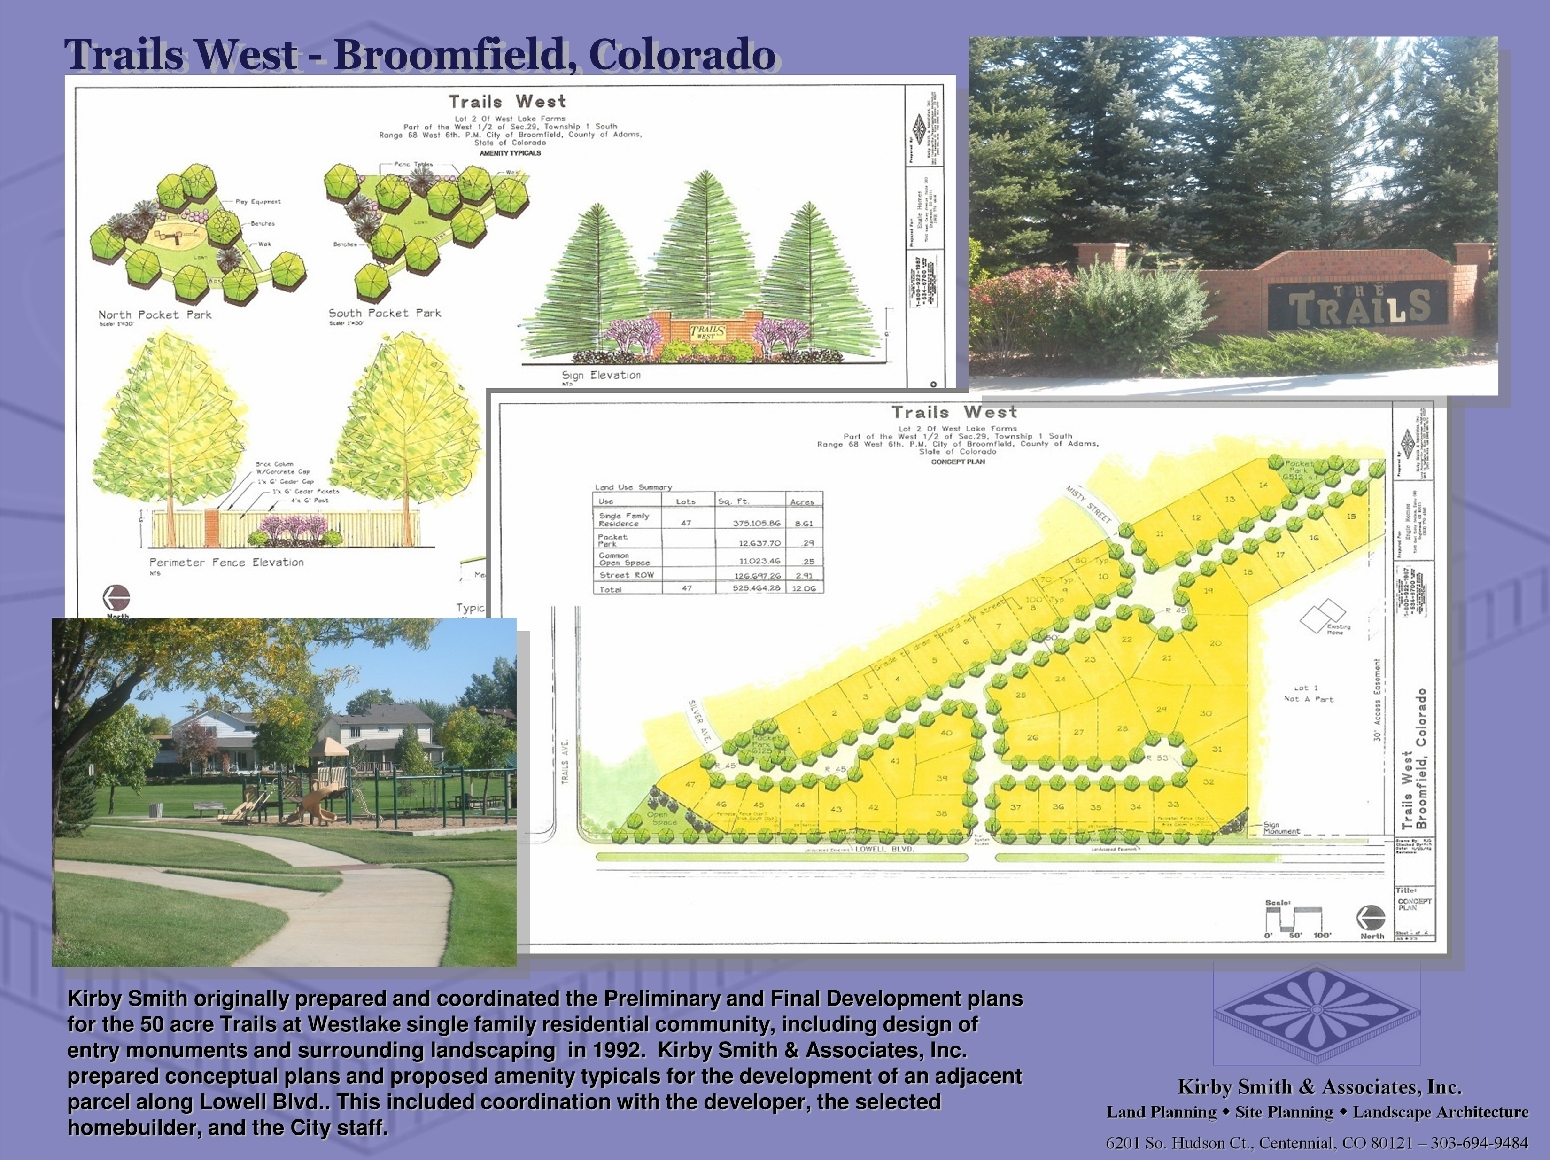 Kirby Smith originally prepared and coordinated the Preliminary and Final Development plans for the 50 acre Trails at Westlake single family residential community, including design of entry monuments and surrounding landscaping.  KSA, Inc. prepared conceptual plans and proposed amenity typicals for the development of an adjacent parcel along Lowell Blvd.. Including coordination with the developer, homebuilder, and the City staff.